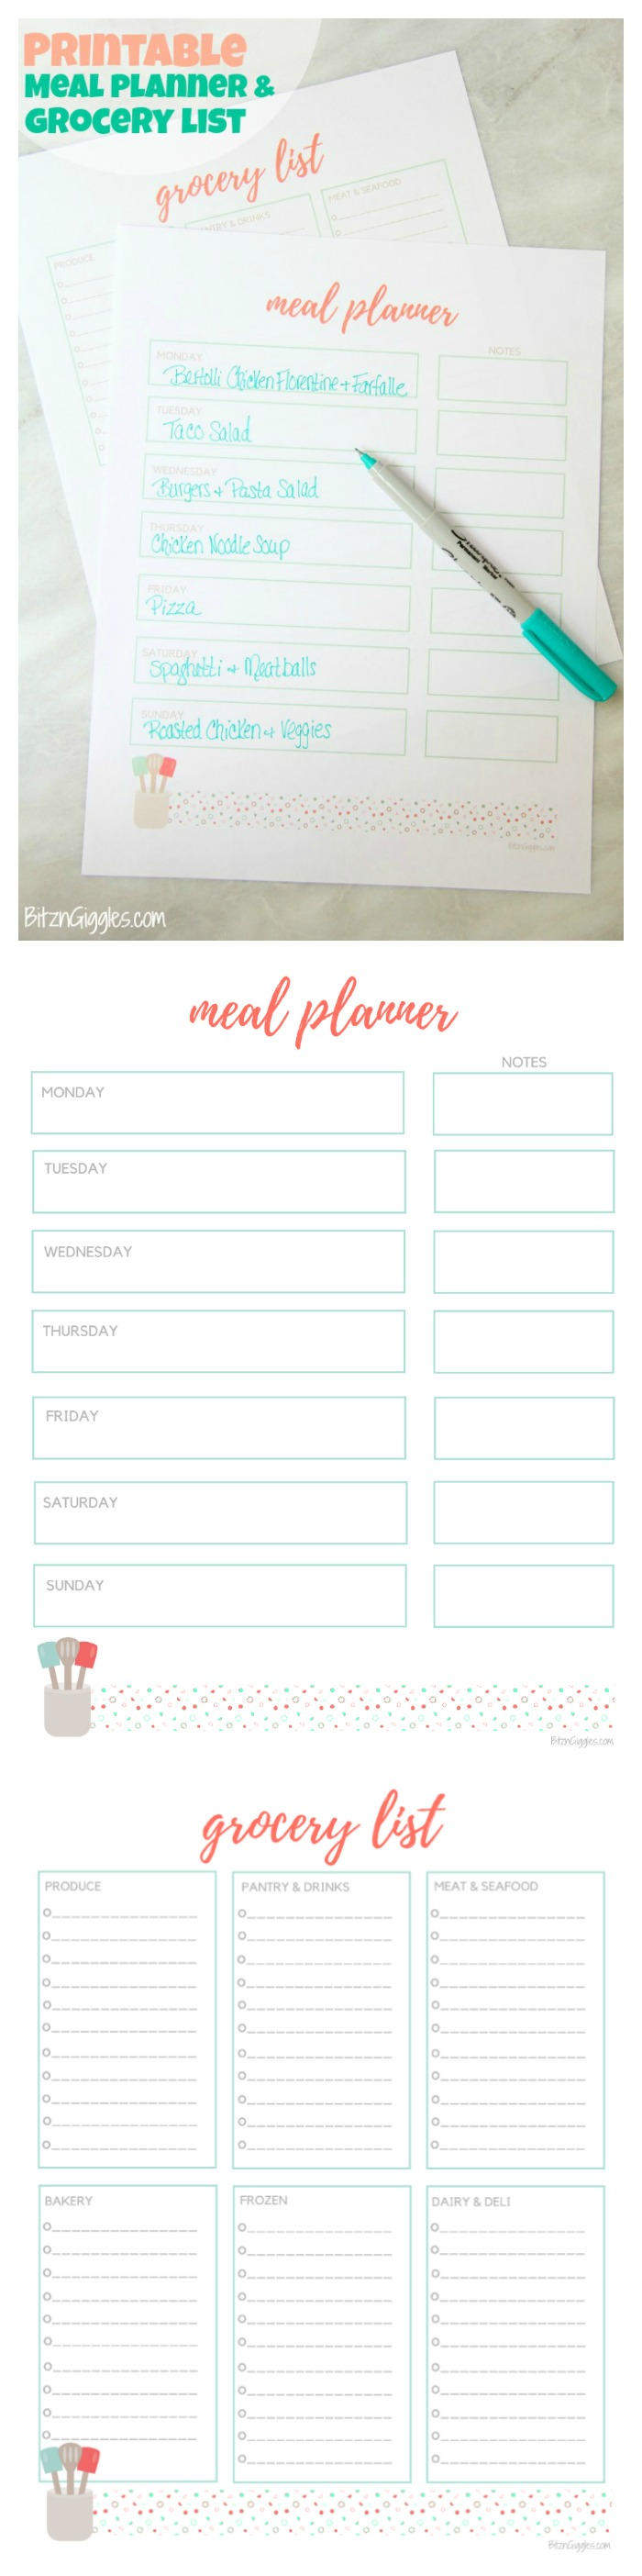 Printable Meal Planner & Grocery List - Free meal planner and grocery list printables to help stay organized and ready for the week ahead!